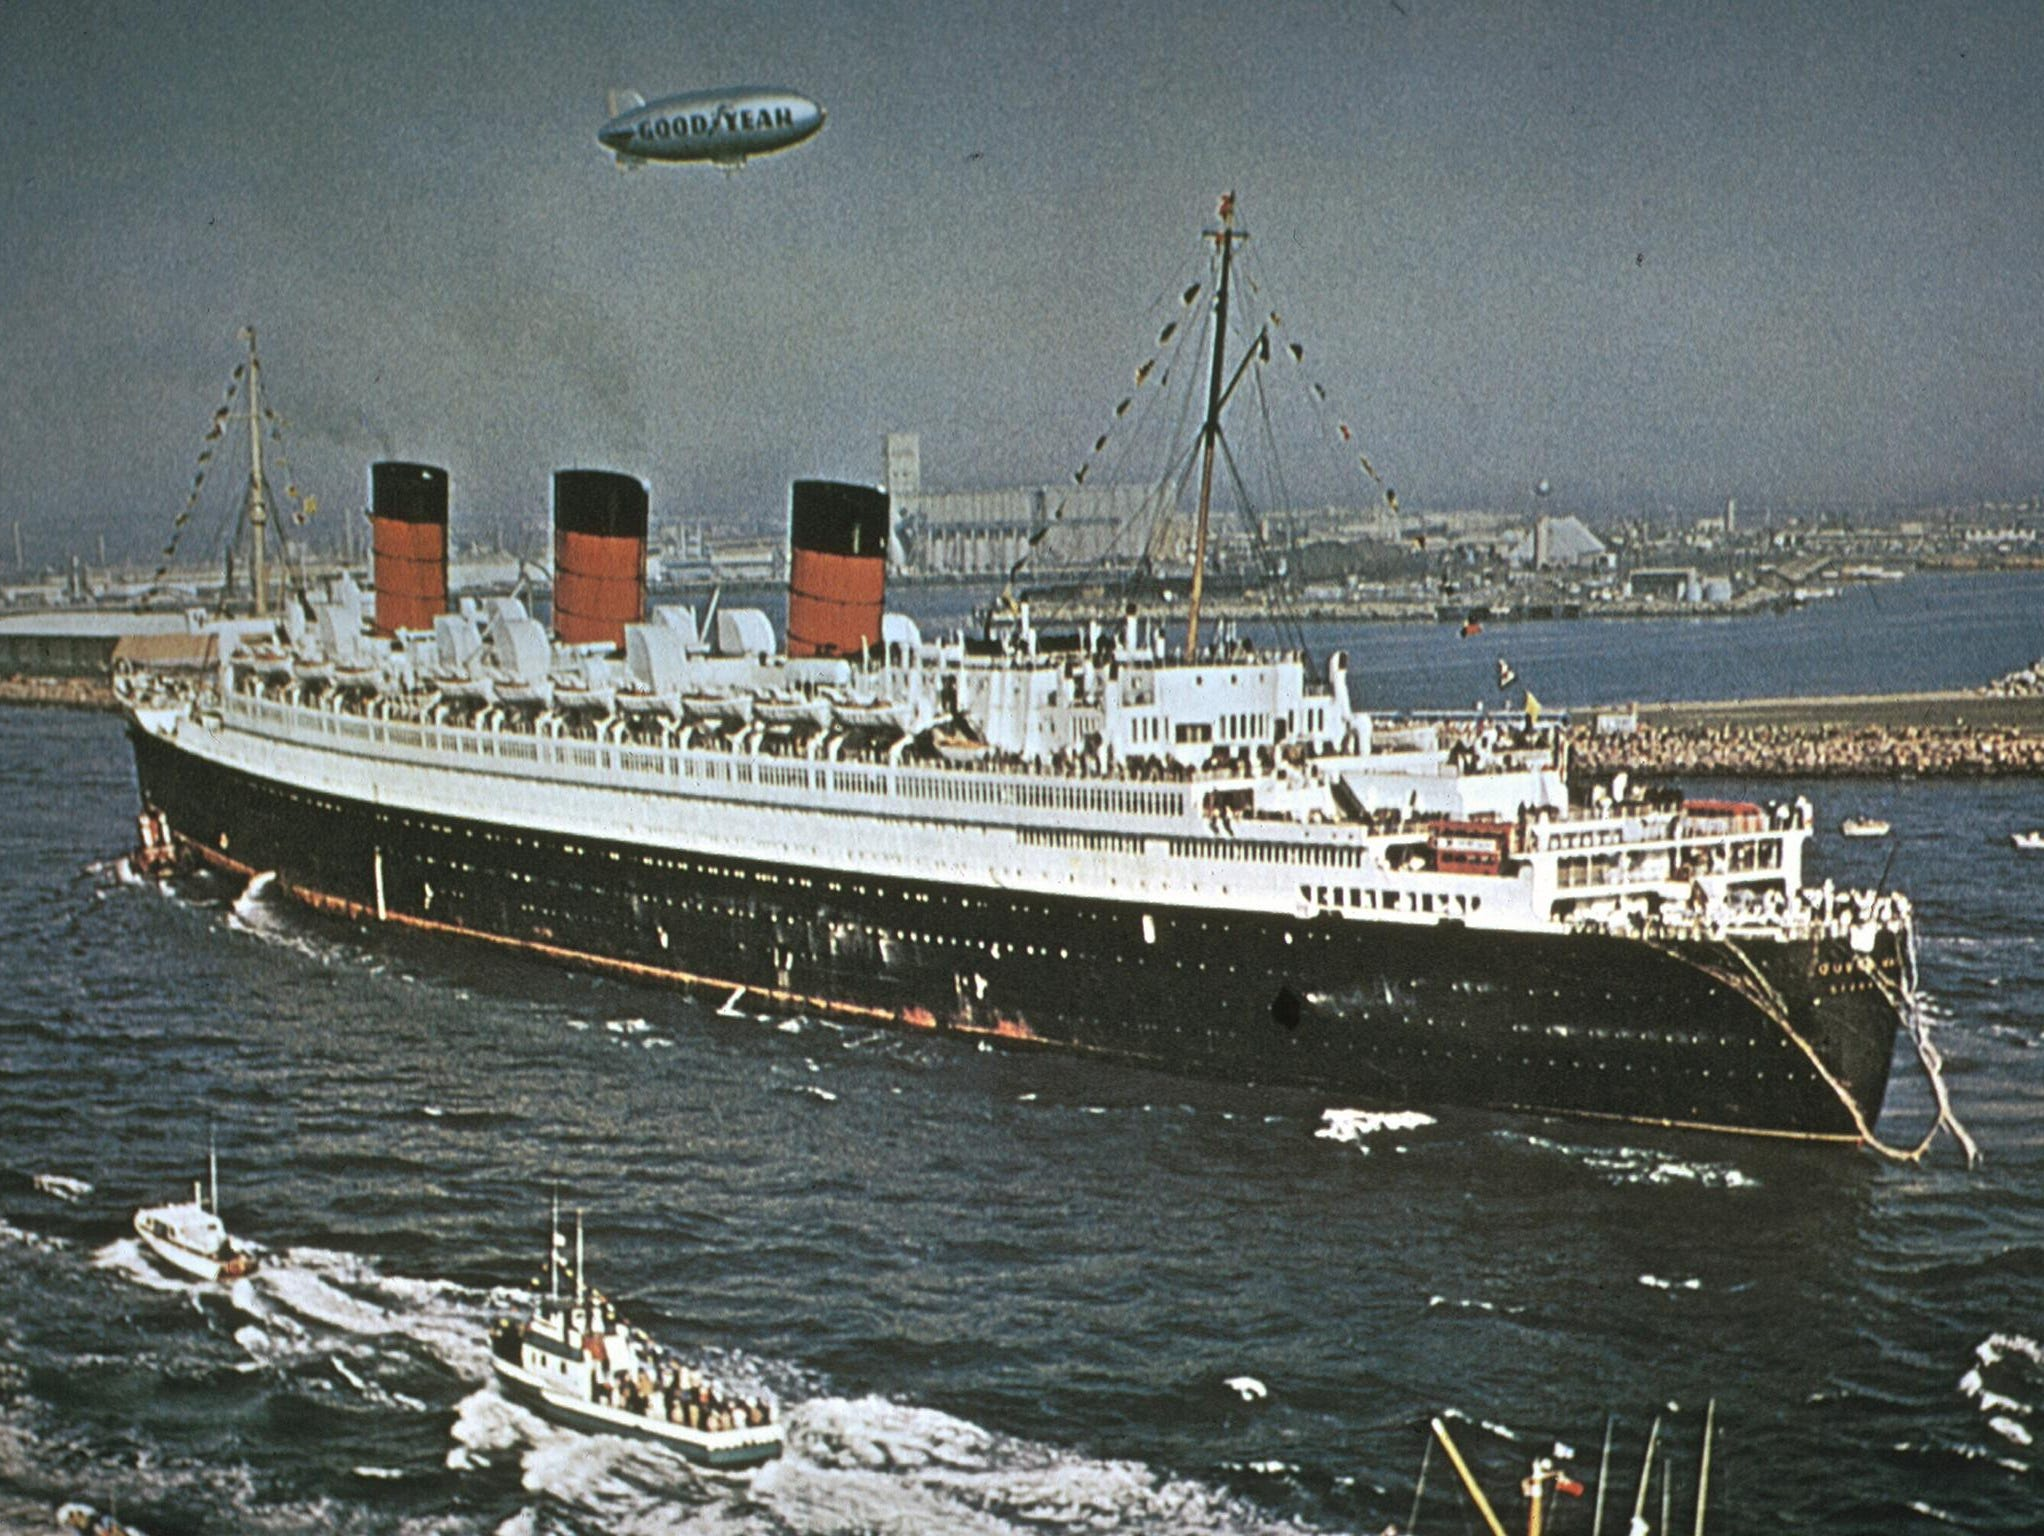 In December 1967, the Mary triumphantly arrived in Long Beach with a 310-foot pay-off pennant flying overhead and four London double-decker buses on the aft decks.